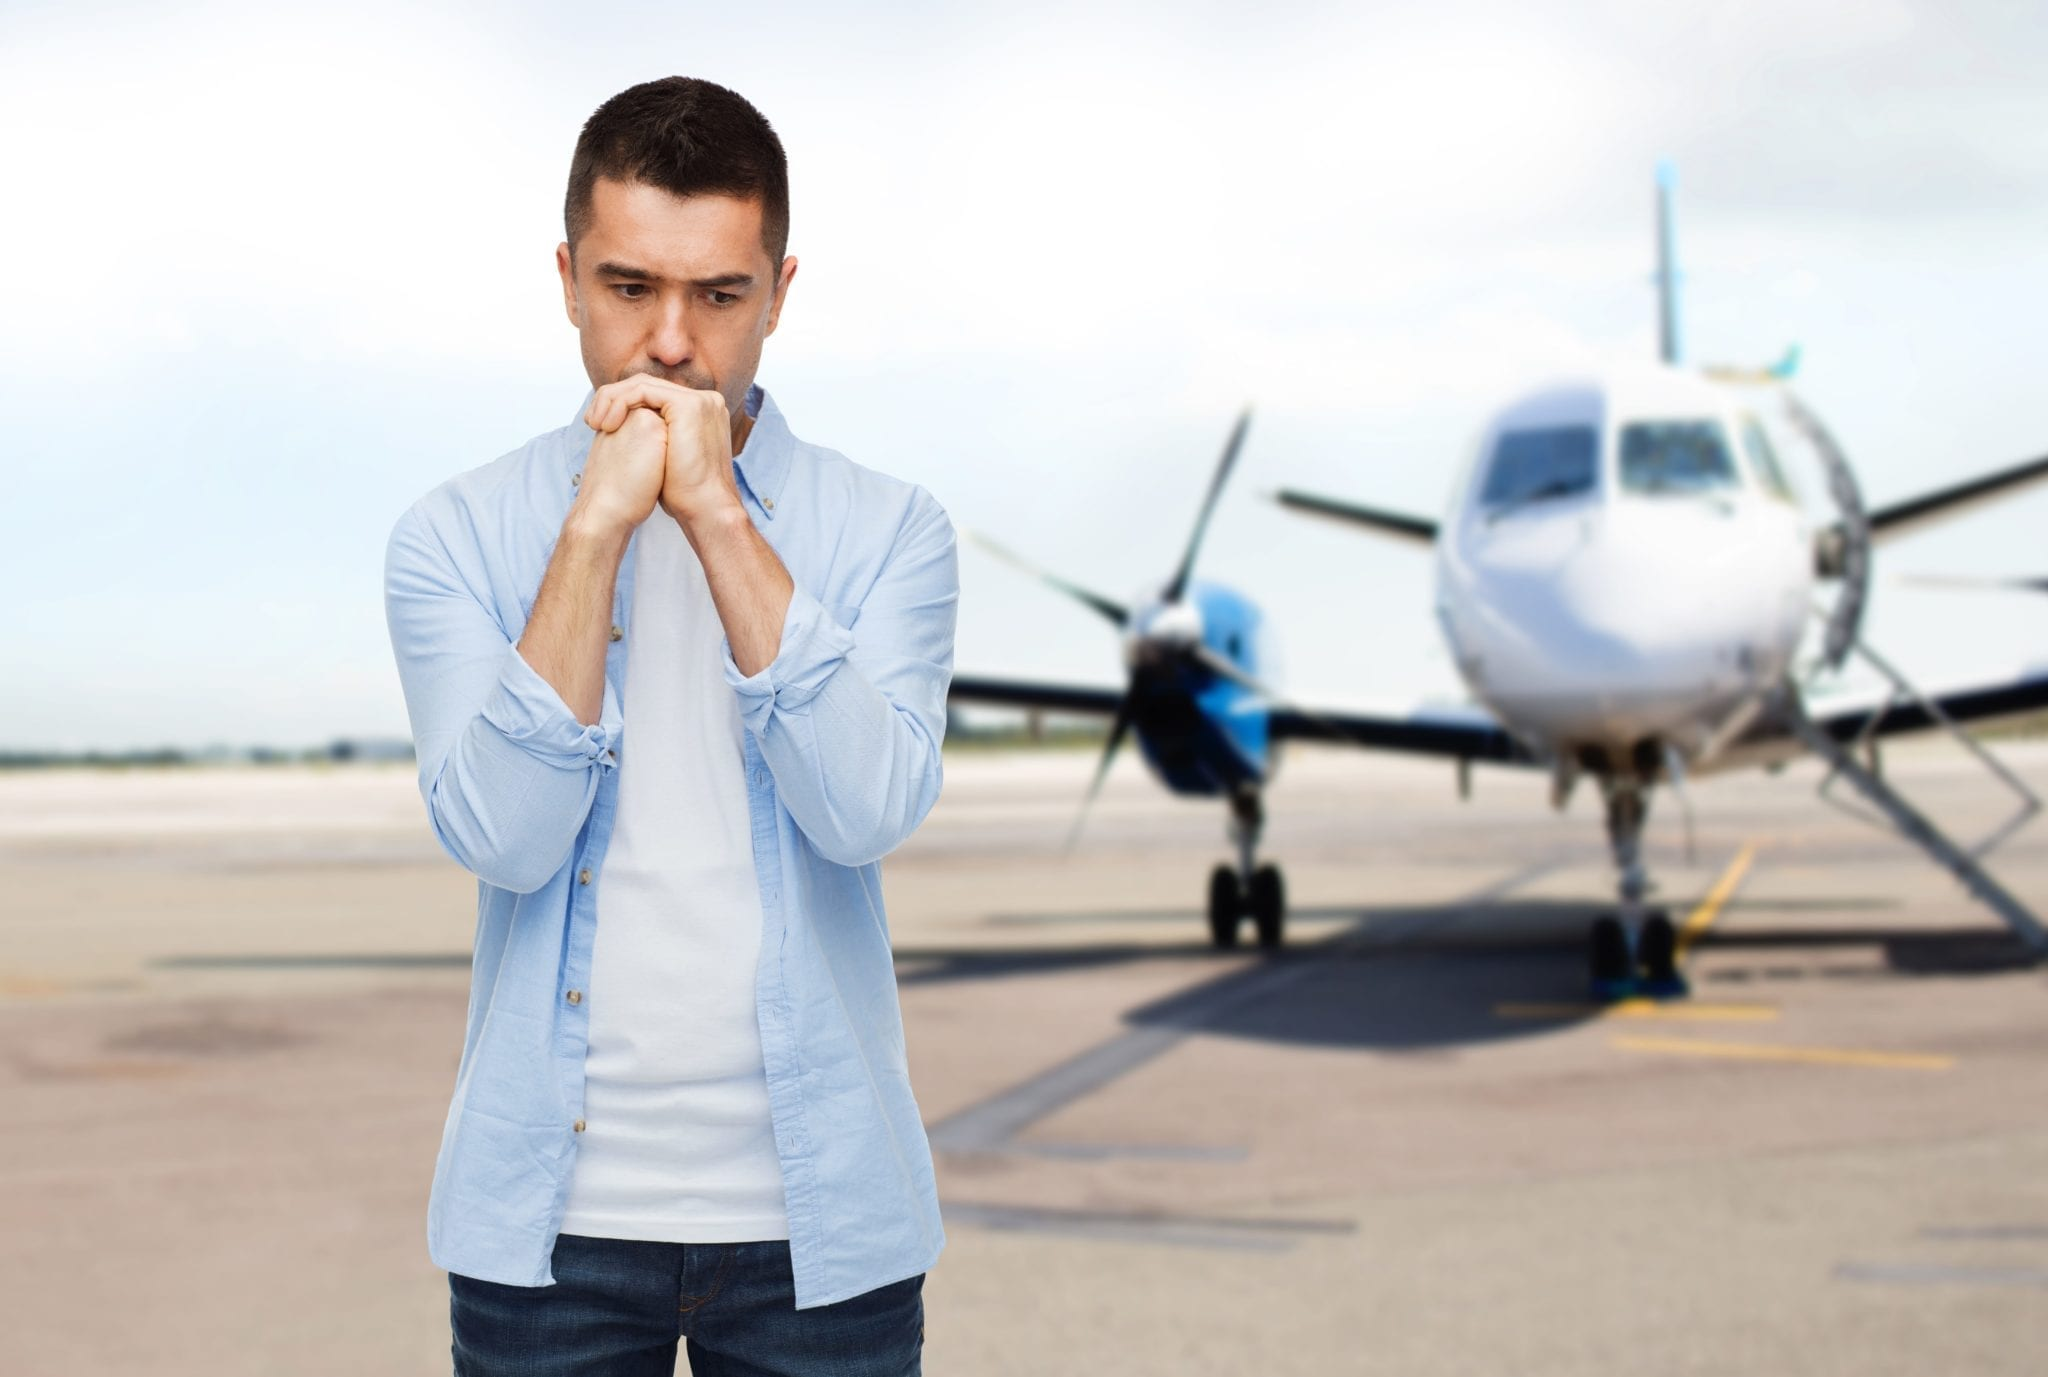 Image of a man in front of a plane looking scared.